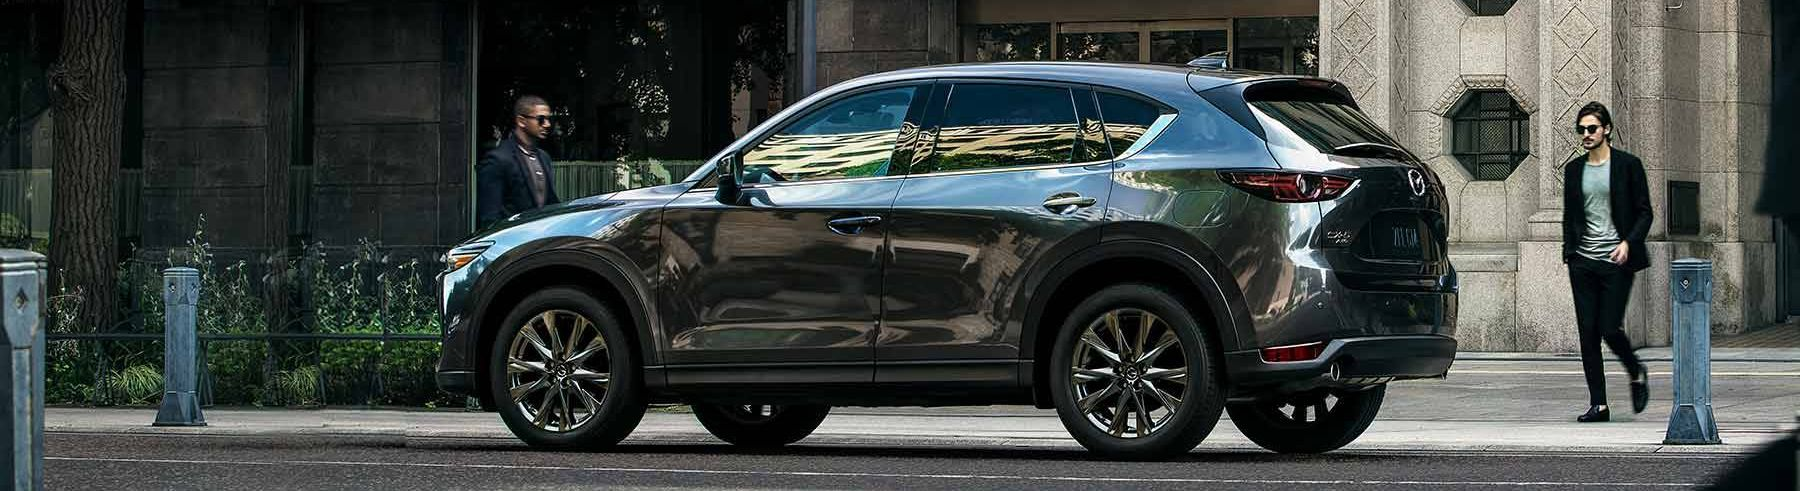 2019 Mazda CX-5 for Sale near Clearwater, FL